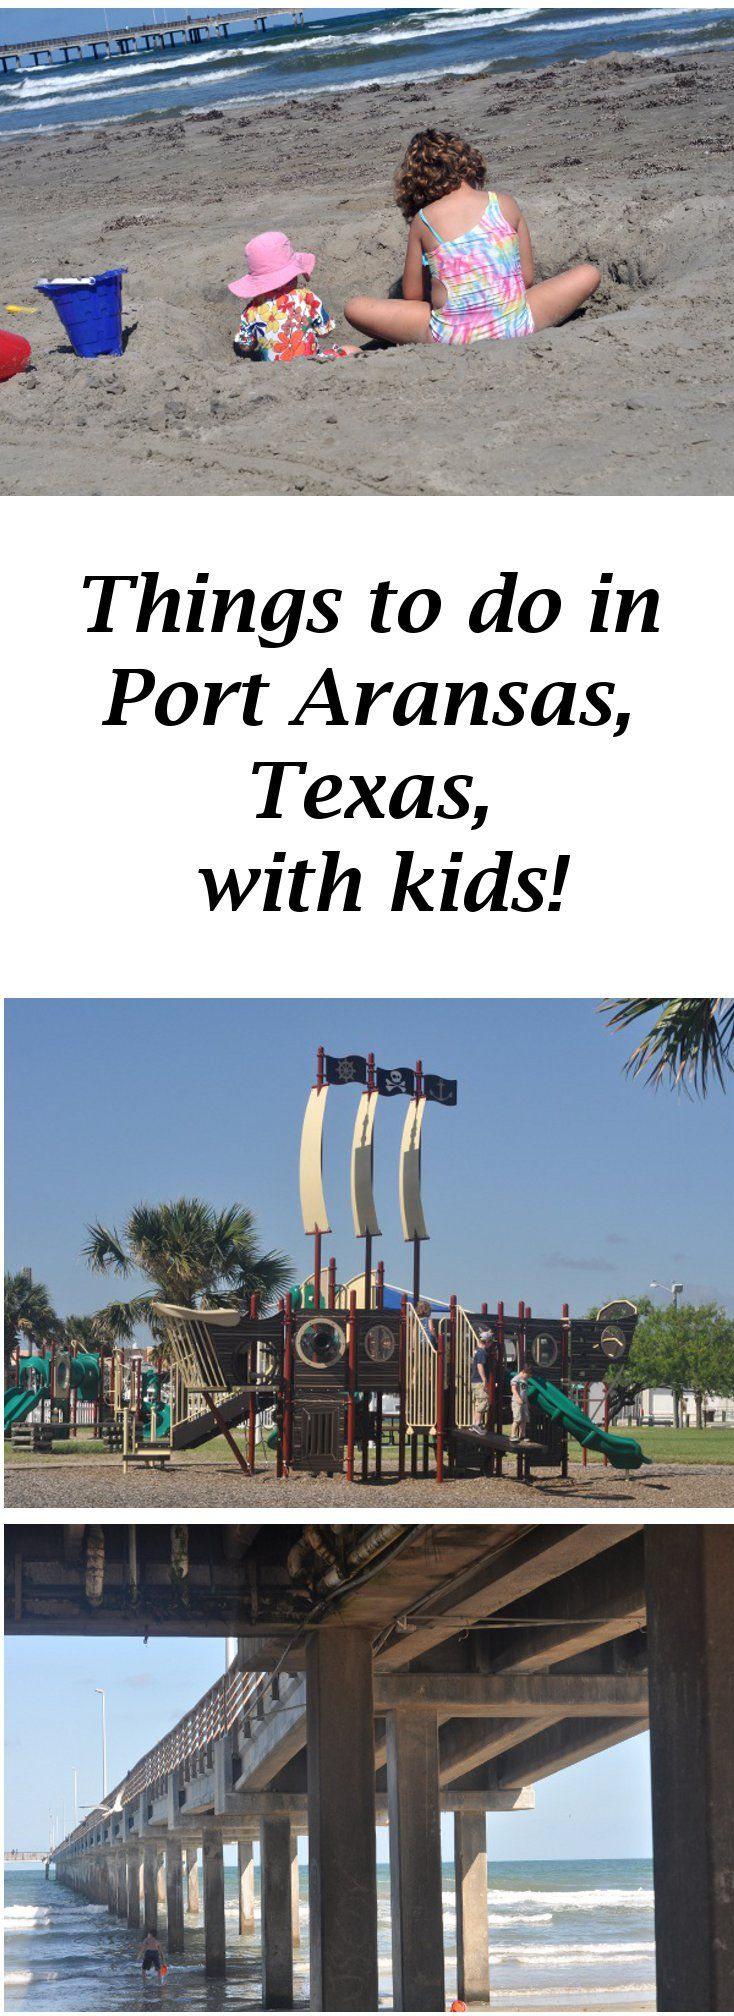 Things to do in Port Aransas, with kids!